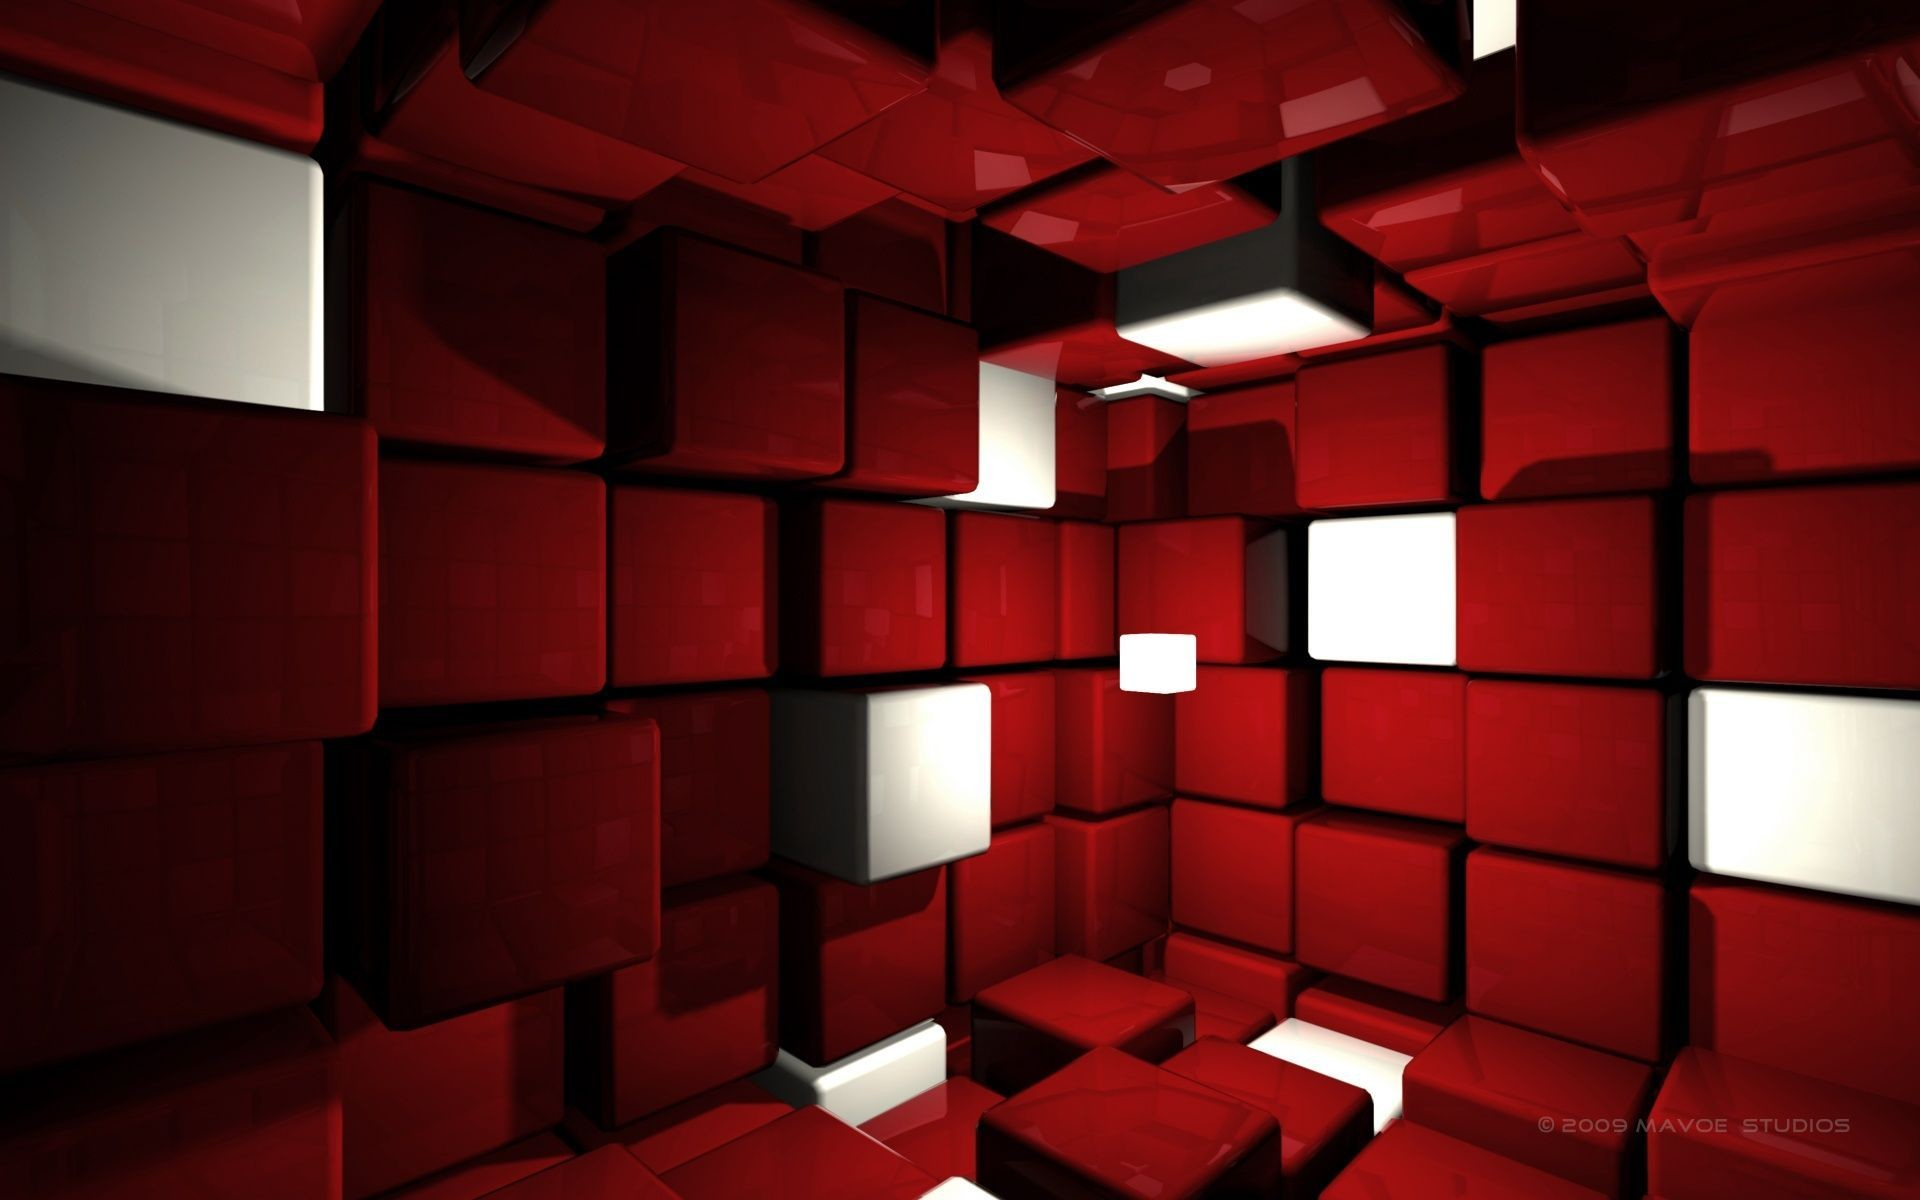 Room with Red Cubes